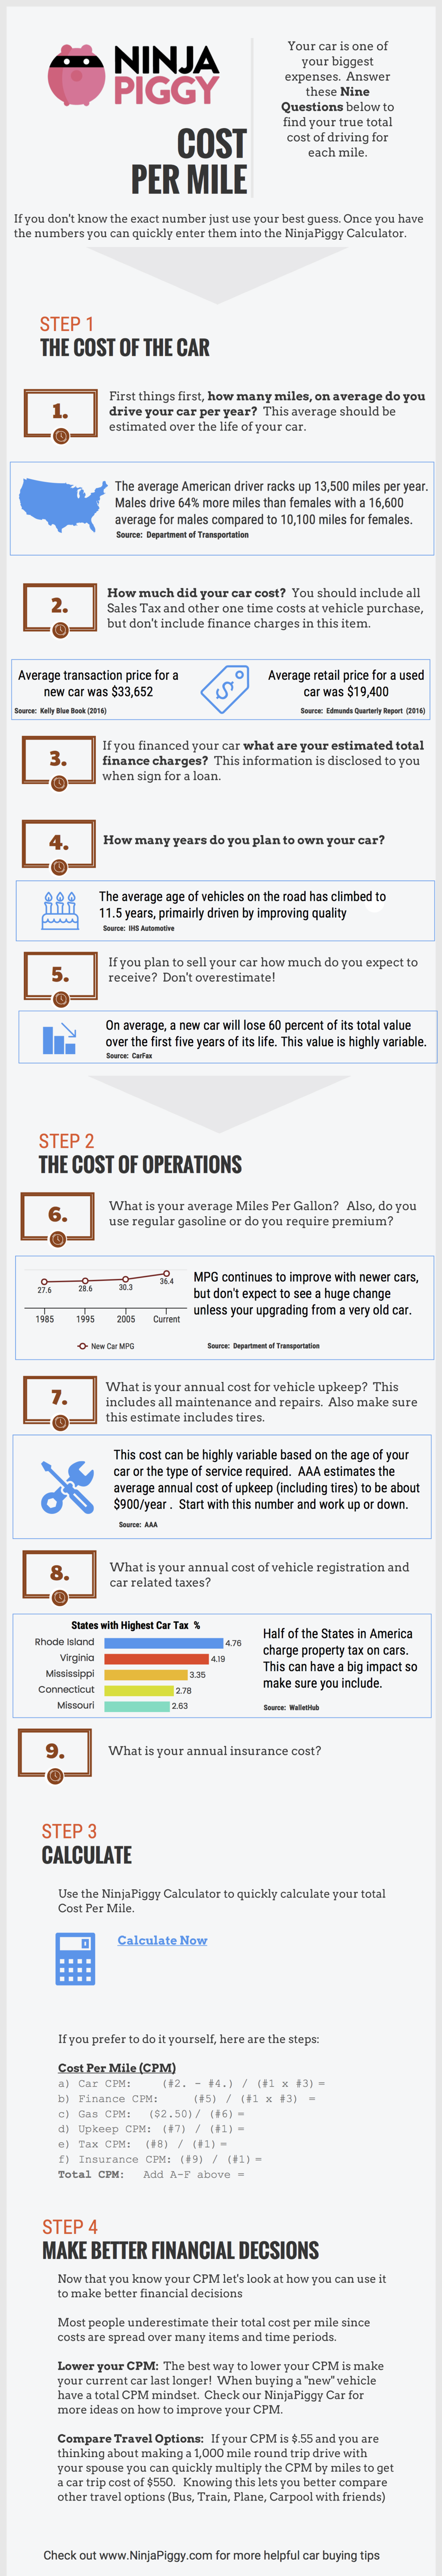 Cost Per Mile (CPM) Infographic